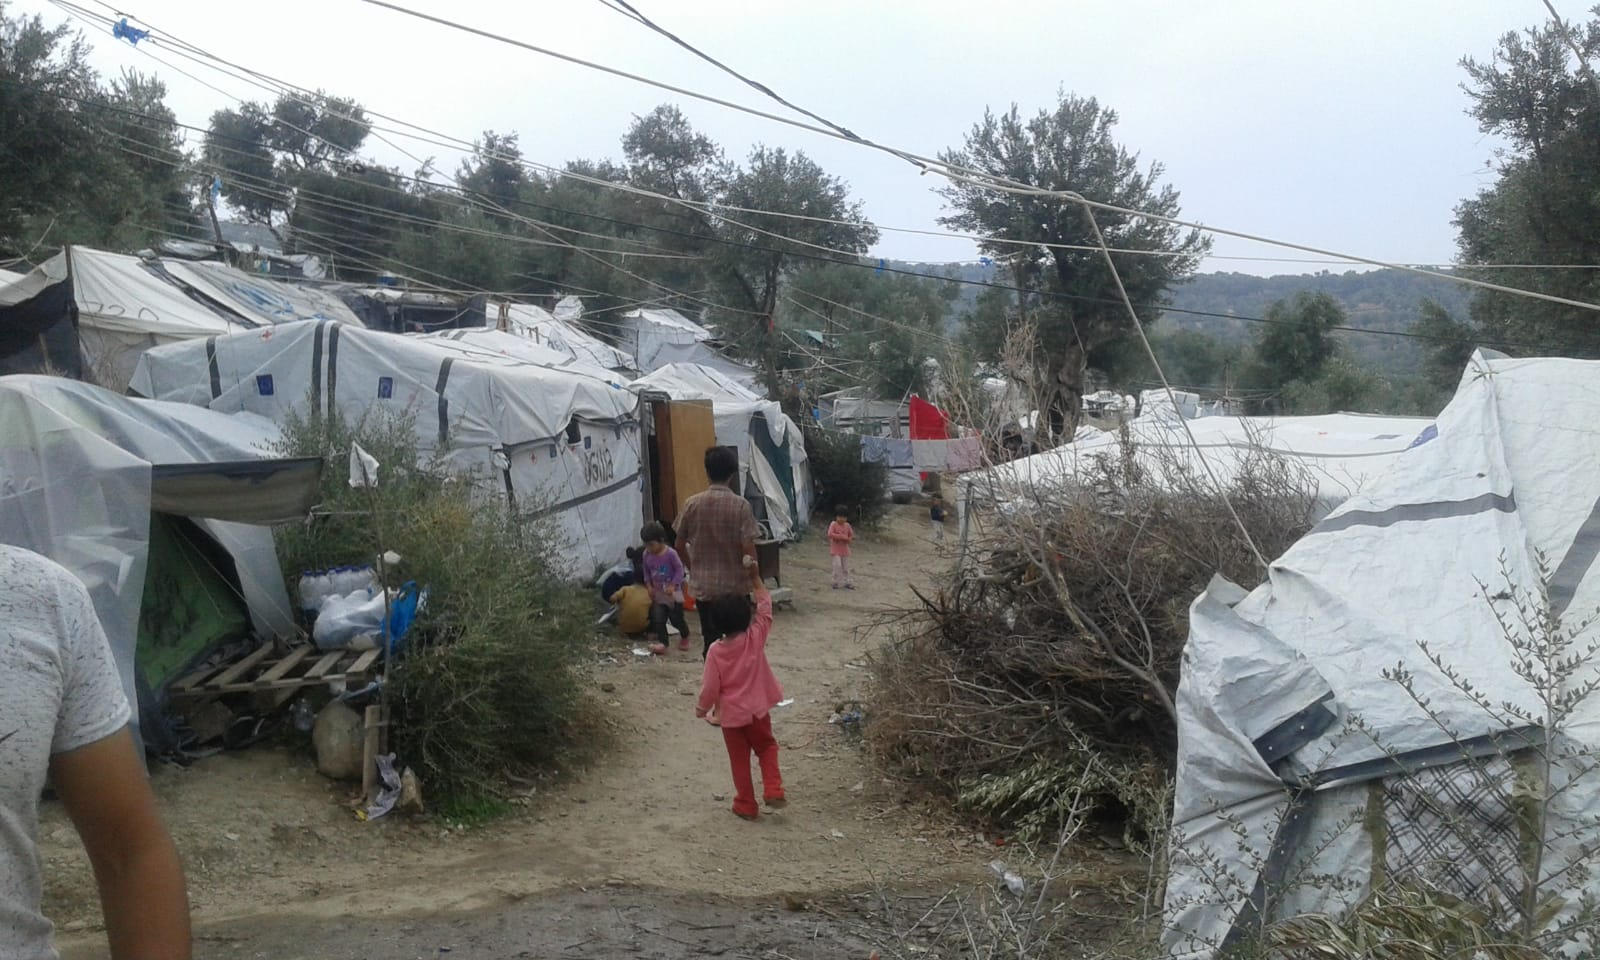 Report on Rights Violations & Resistance in Lesvos – October 2019